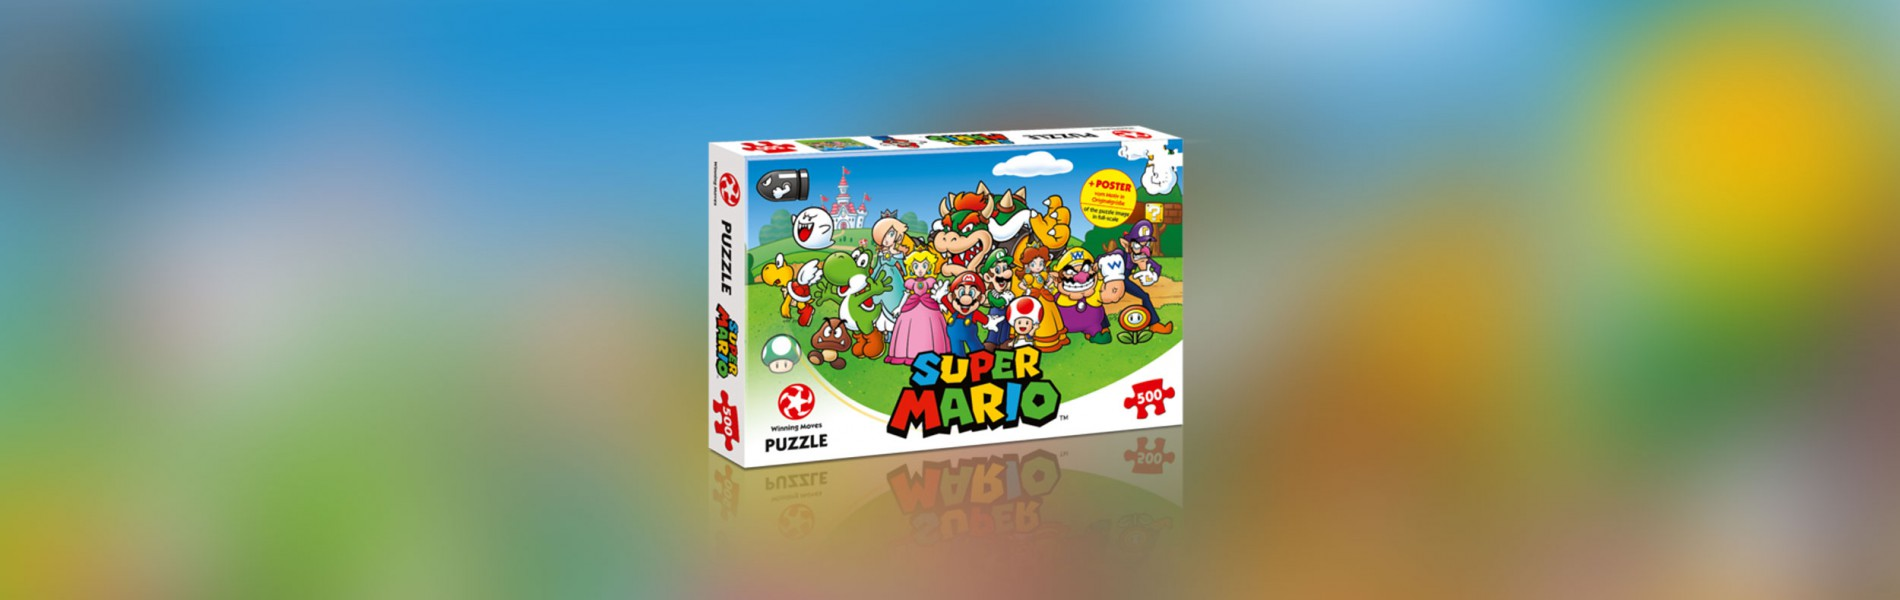 Puzzle Super Mario – Mario and Friends 500 Teile